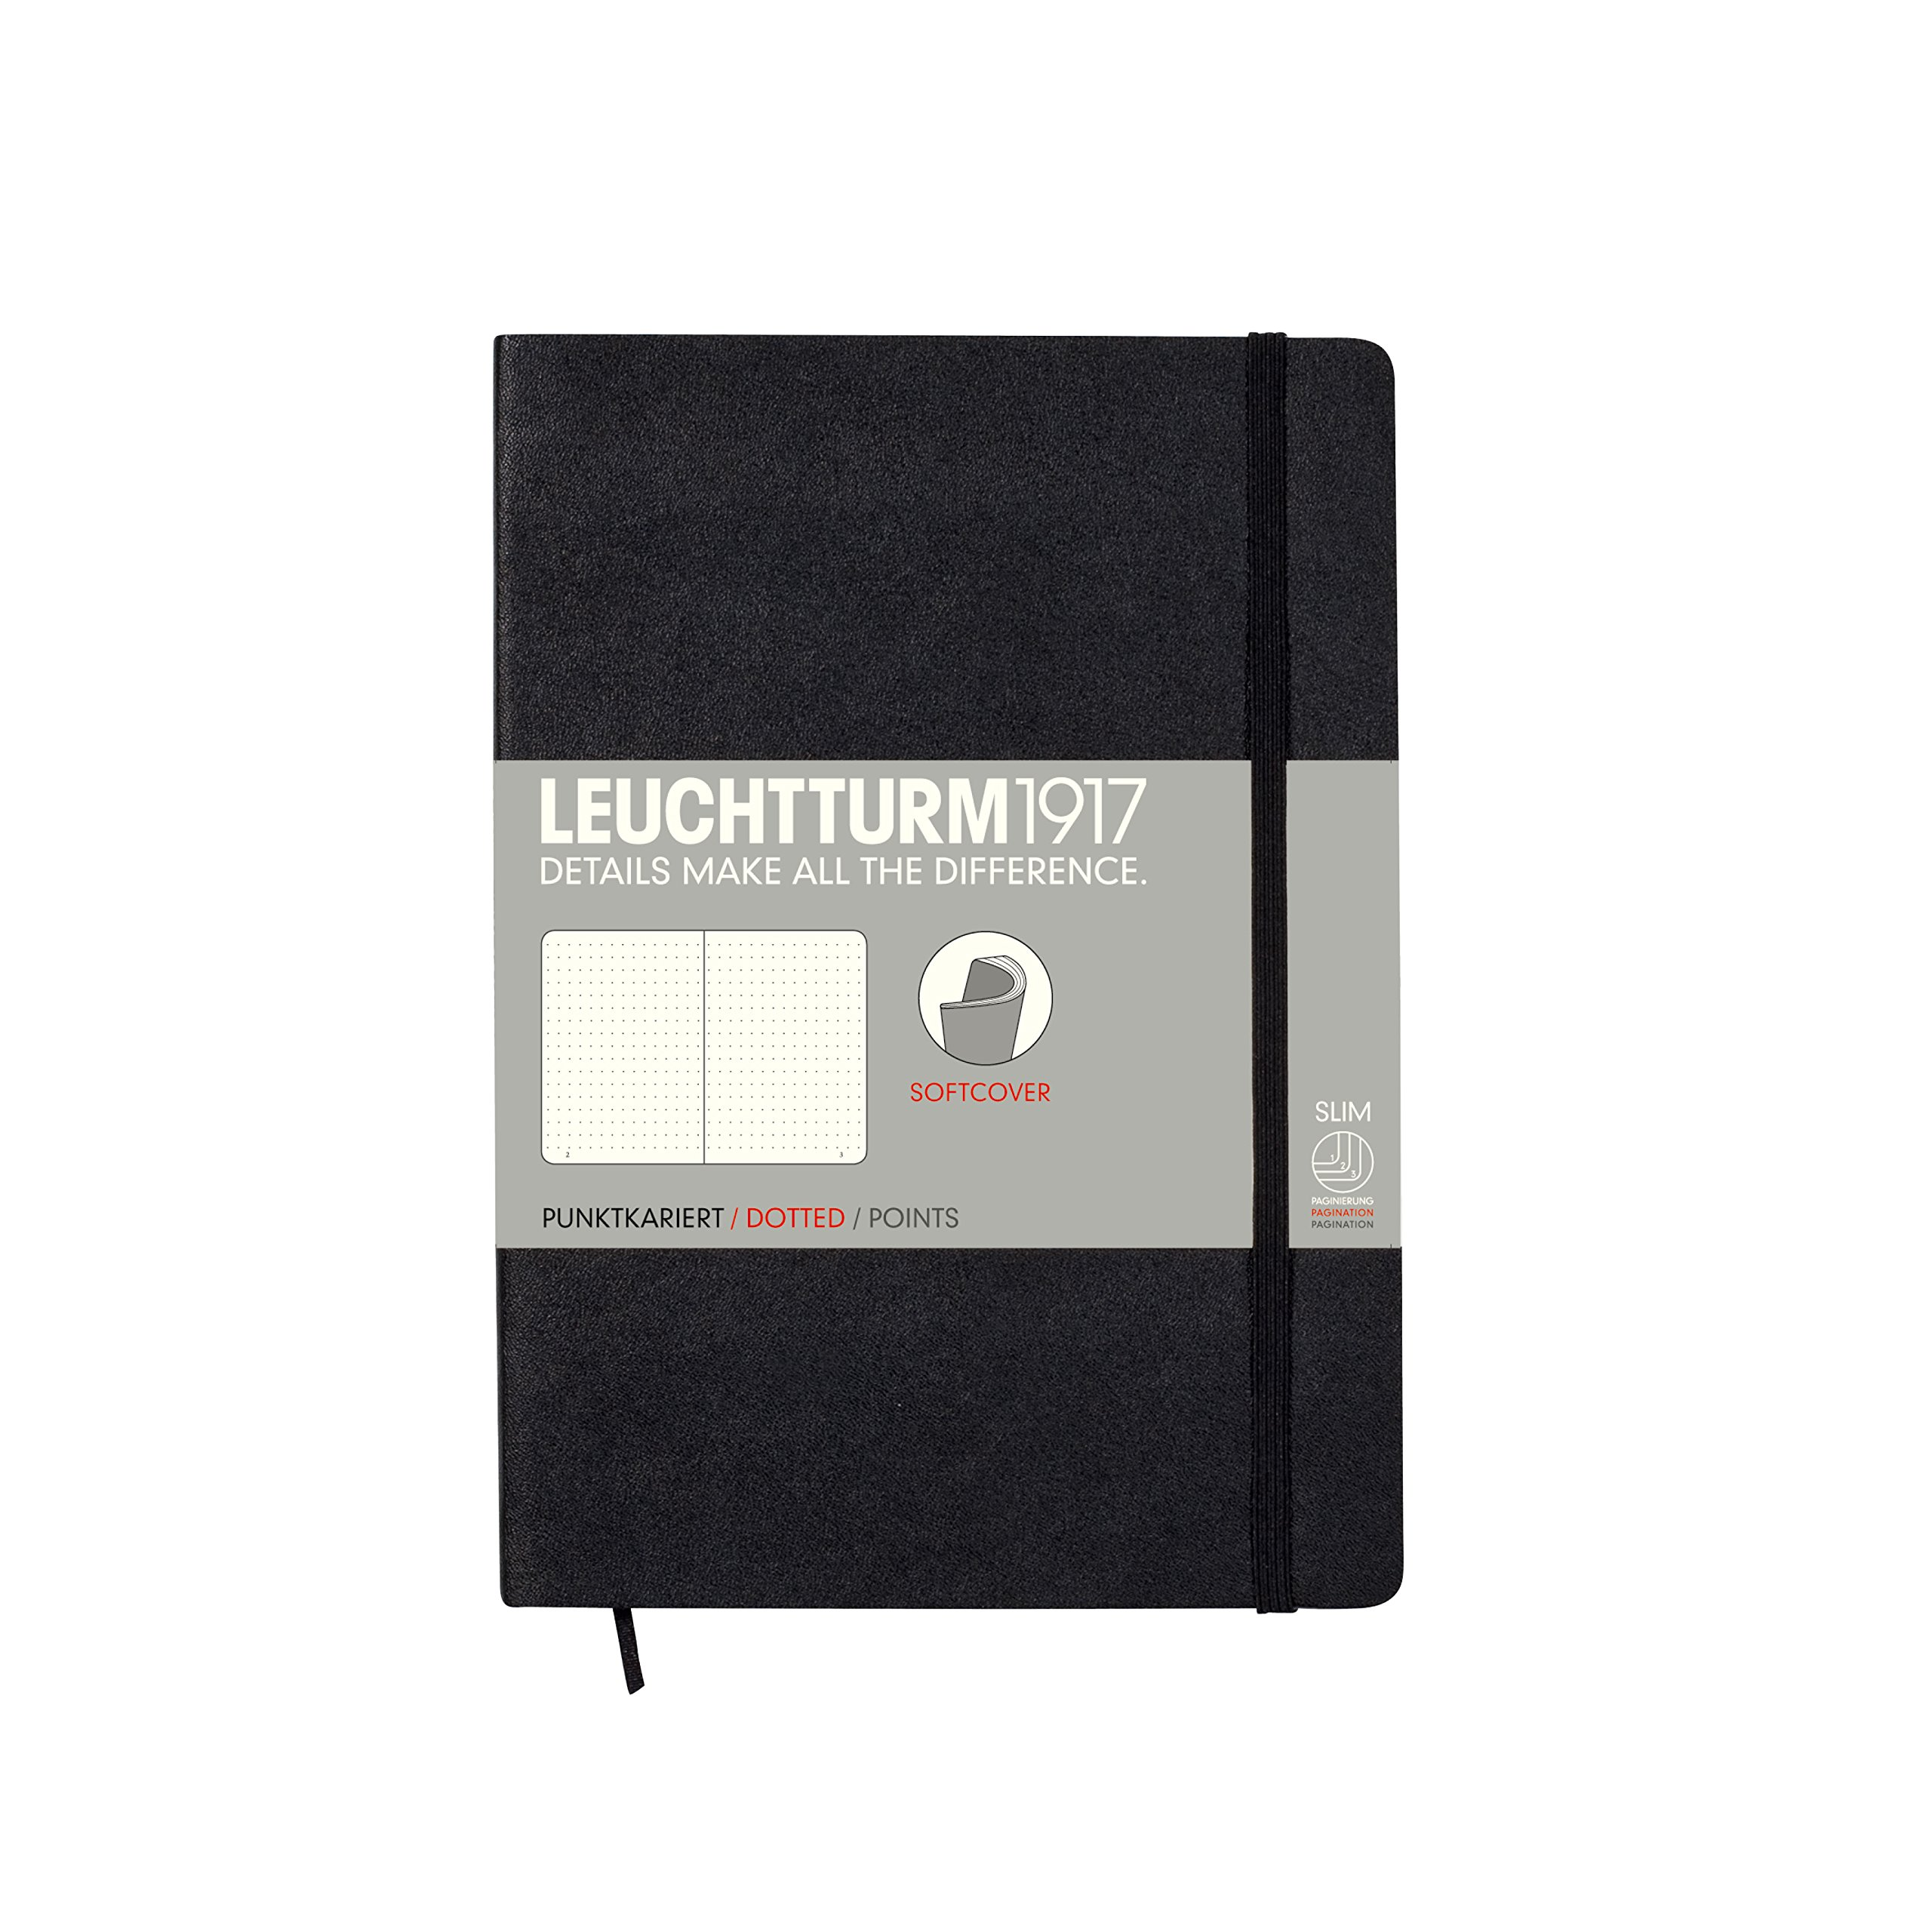 123 Numbered Pages Leuchtturm1917 Notebook Paperback B6+ Softcover